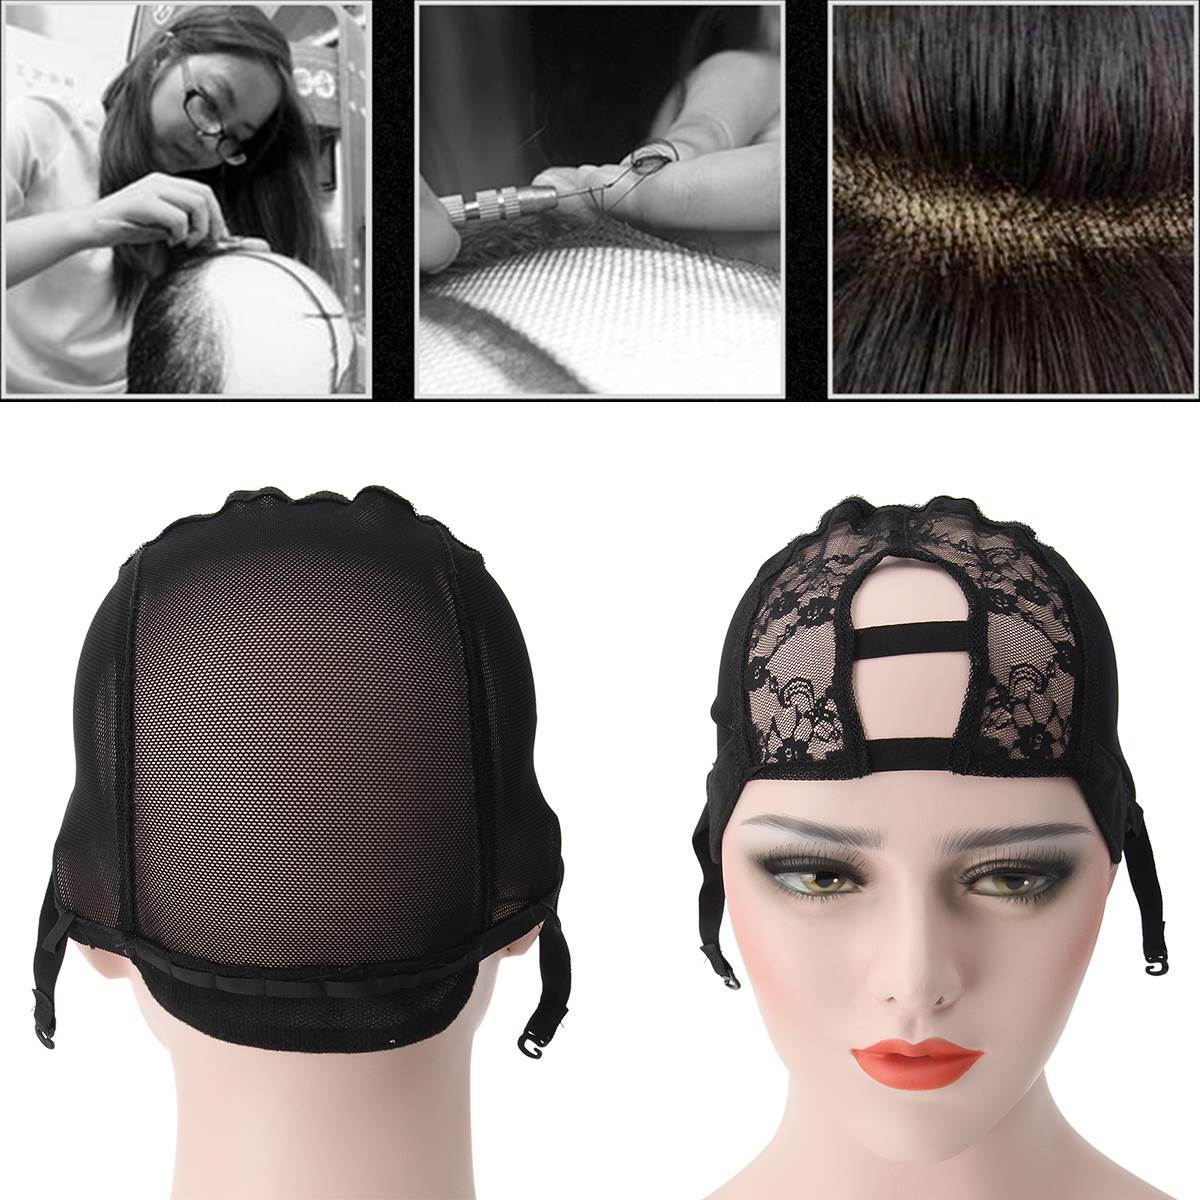 Hair Extensions & Wigs Tools & Accessories Flight Tracker M Size Wig Caps For Making Wigs 3pcs Top Quality Stretch Adjustable Straps Back